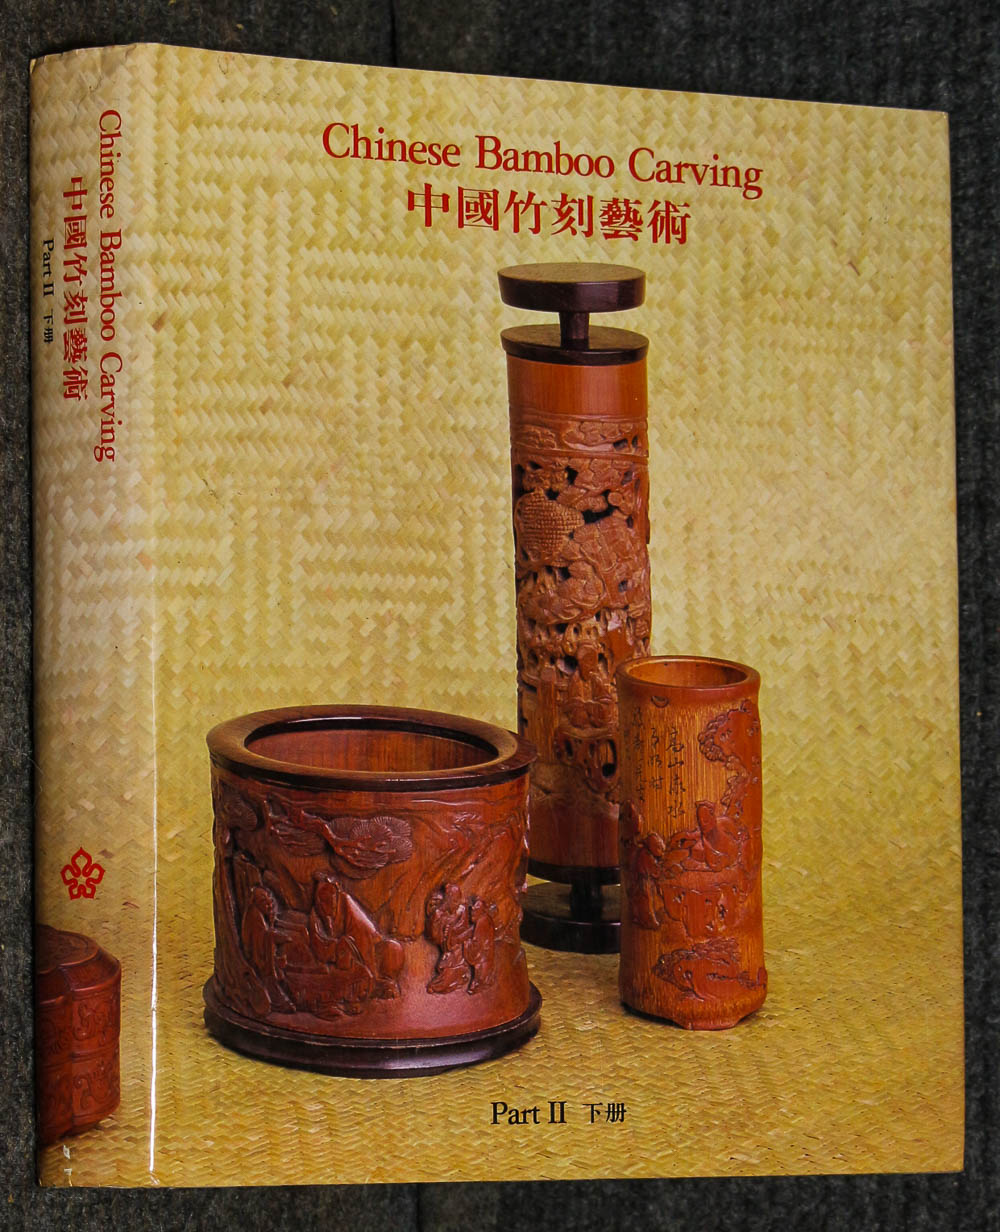 Image for Chinese Bamboo Carving. Part II (of 2) 1982